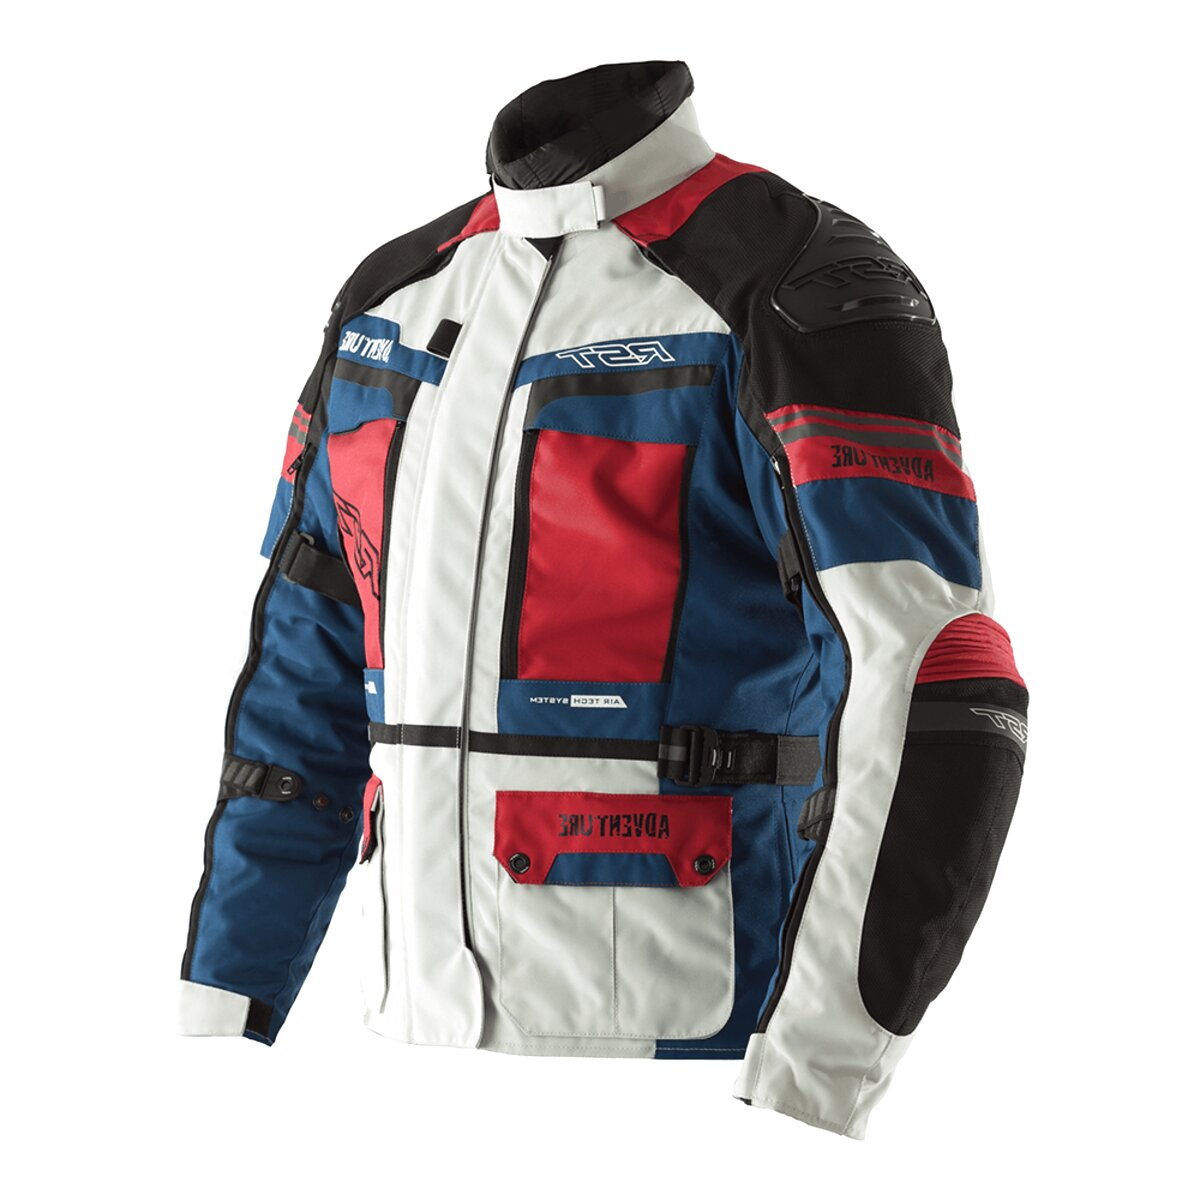 RST 2850 Pro Series Adventure III CE Waterproof Motorcycle Jacket £175.00 UK 50